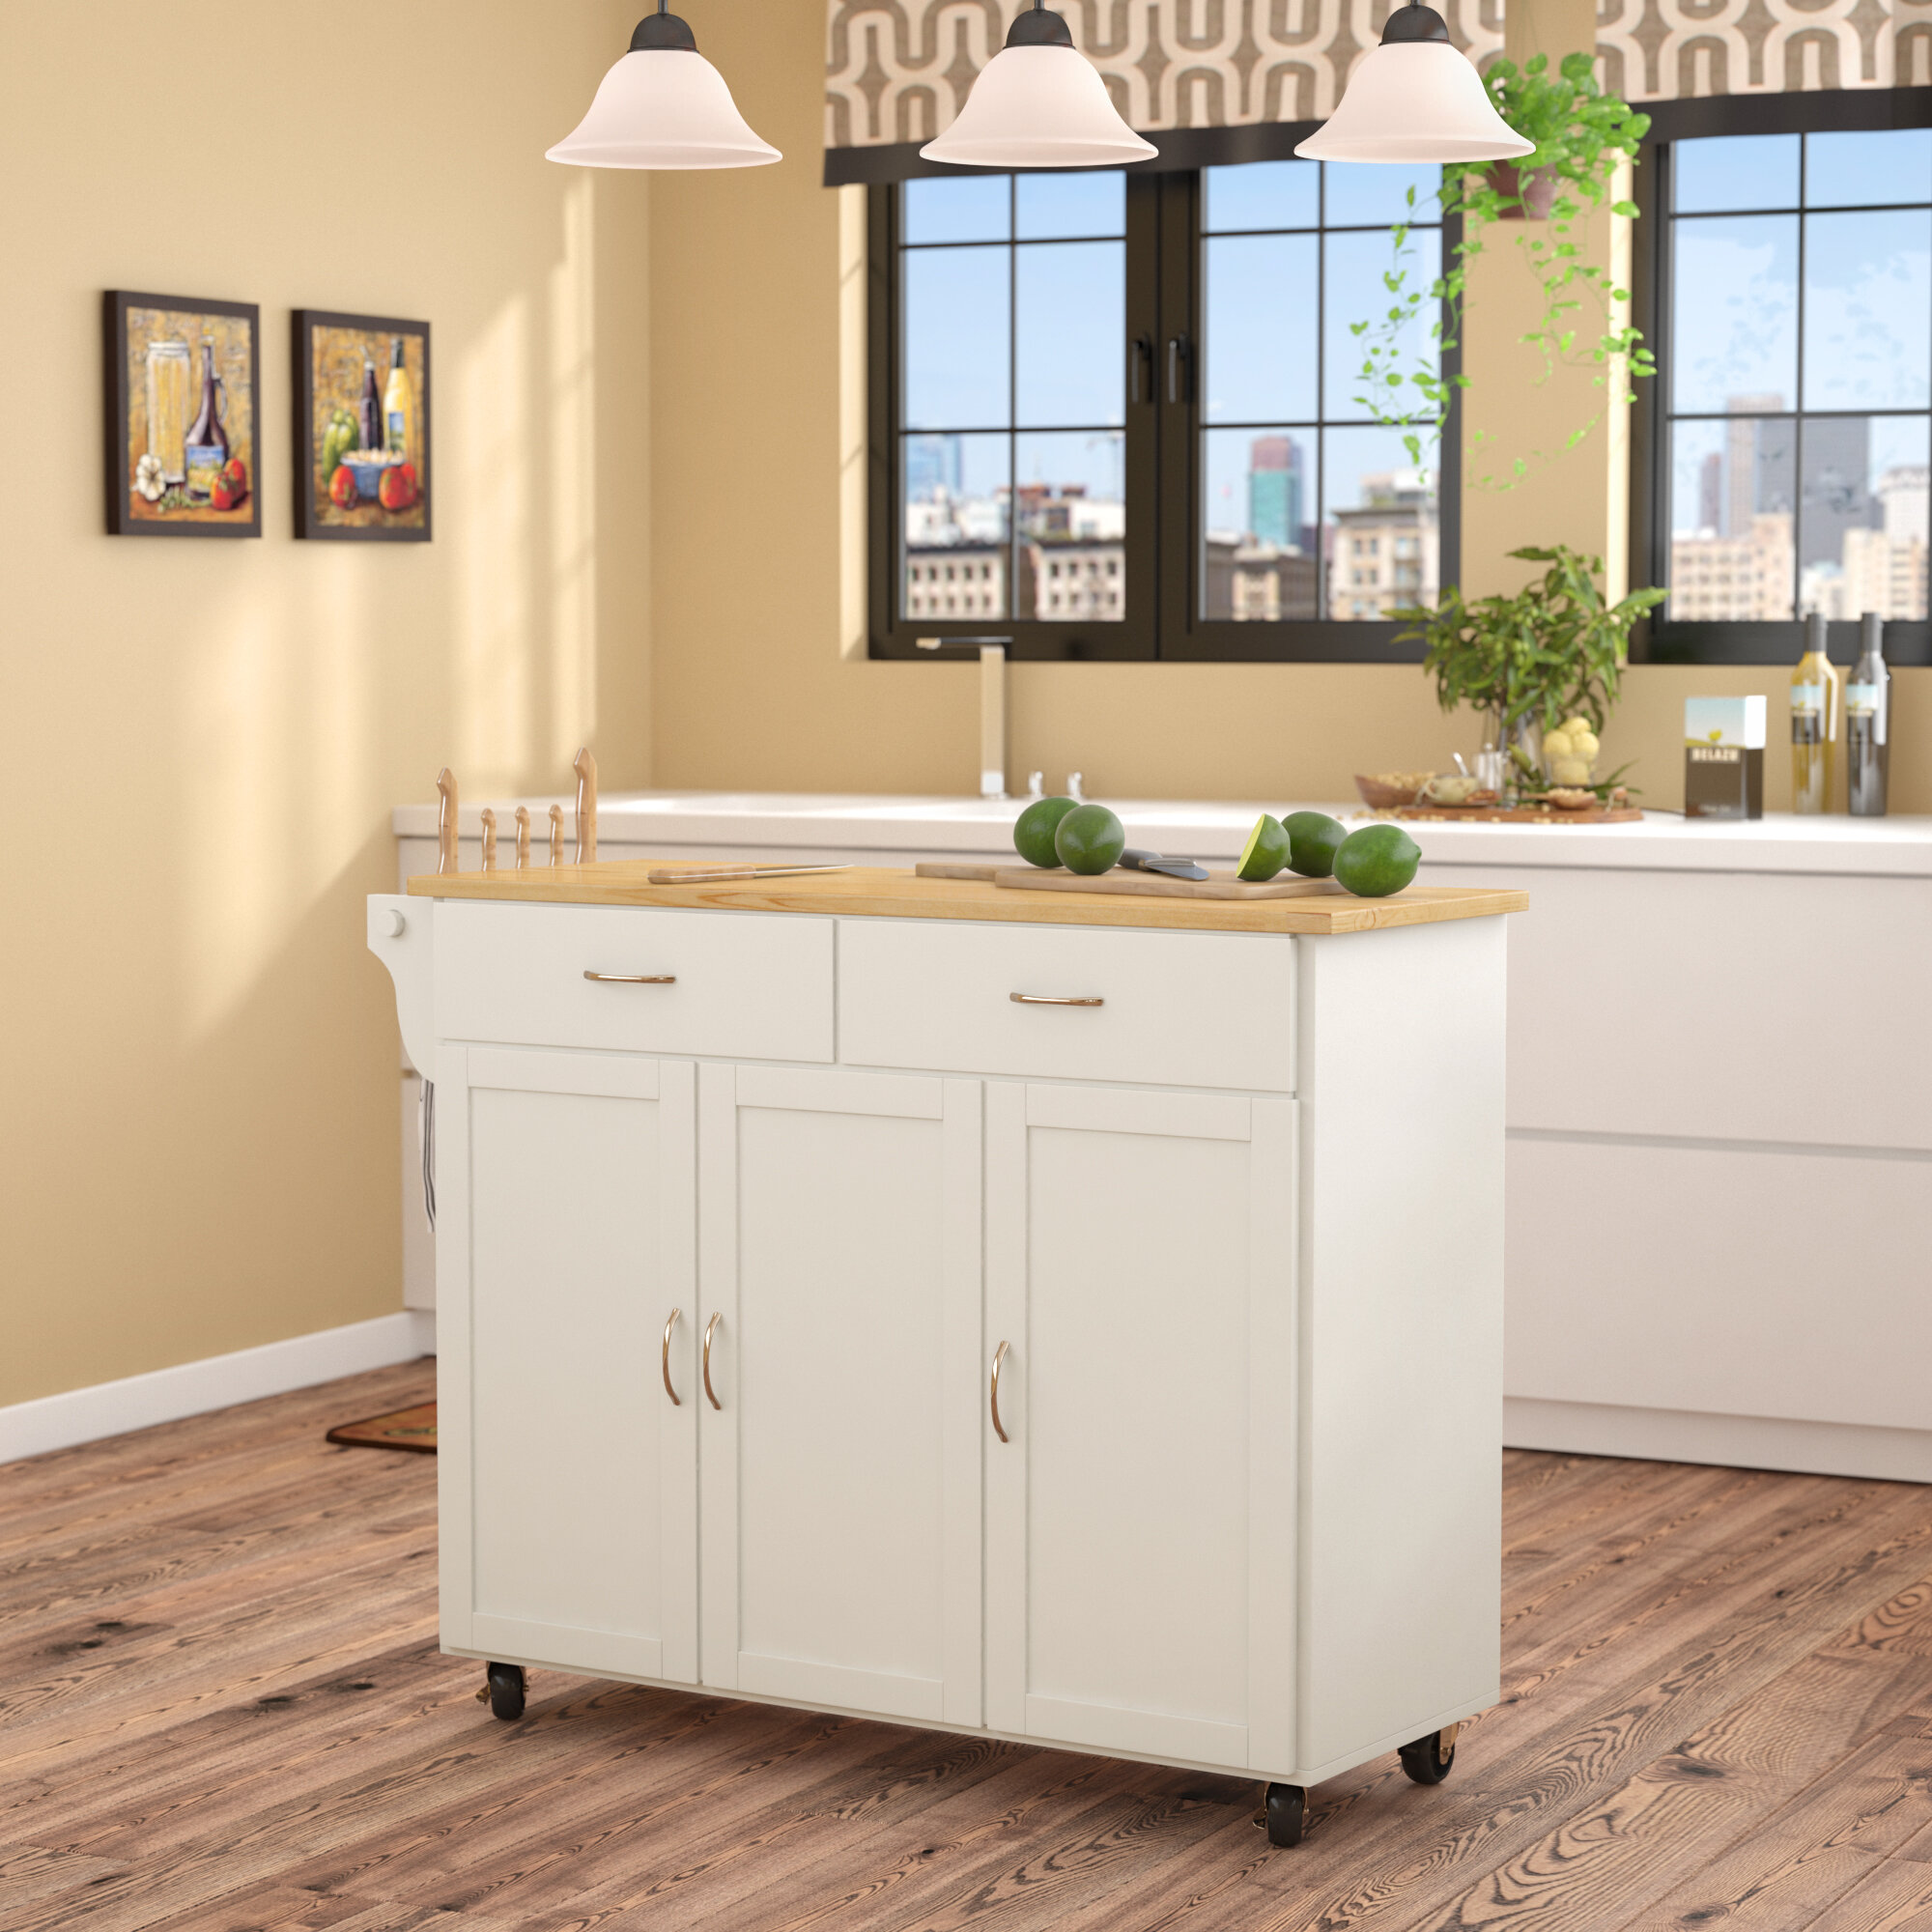 Alcott Hill Sayers Kitchen Island With Wood Top Reviews Wayfair